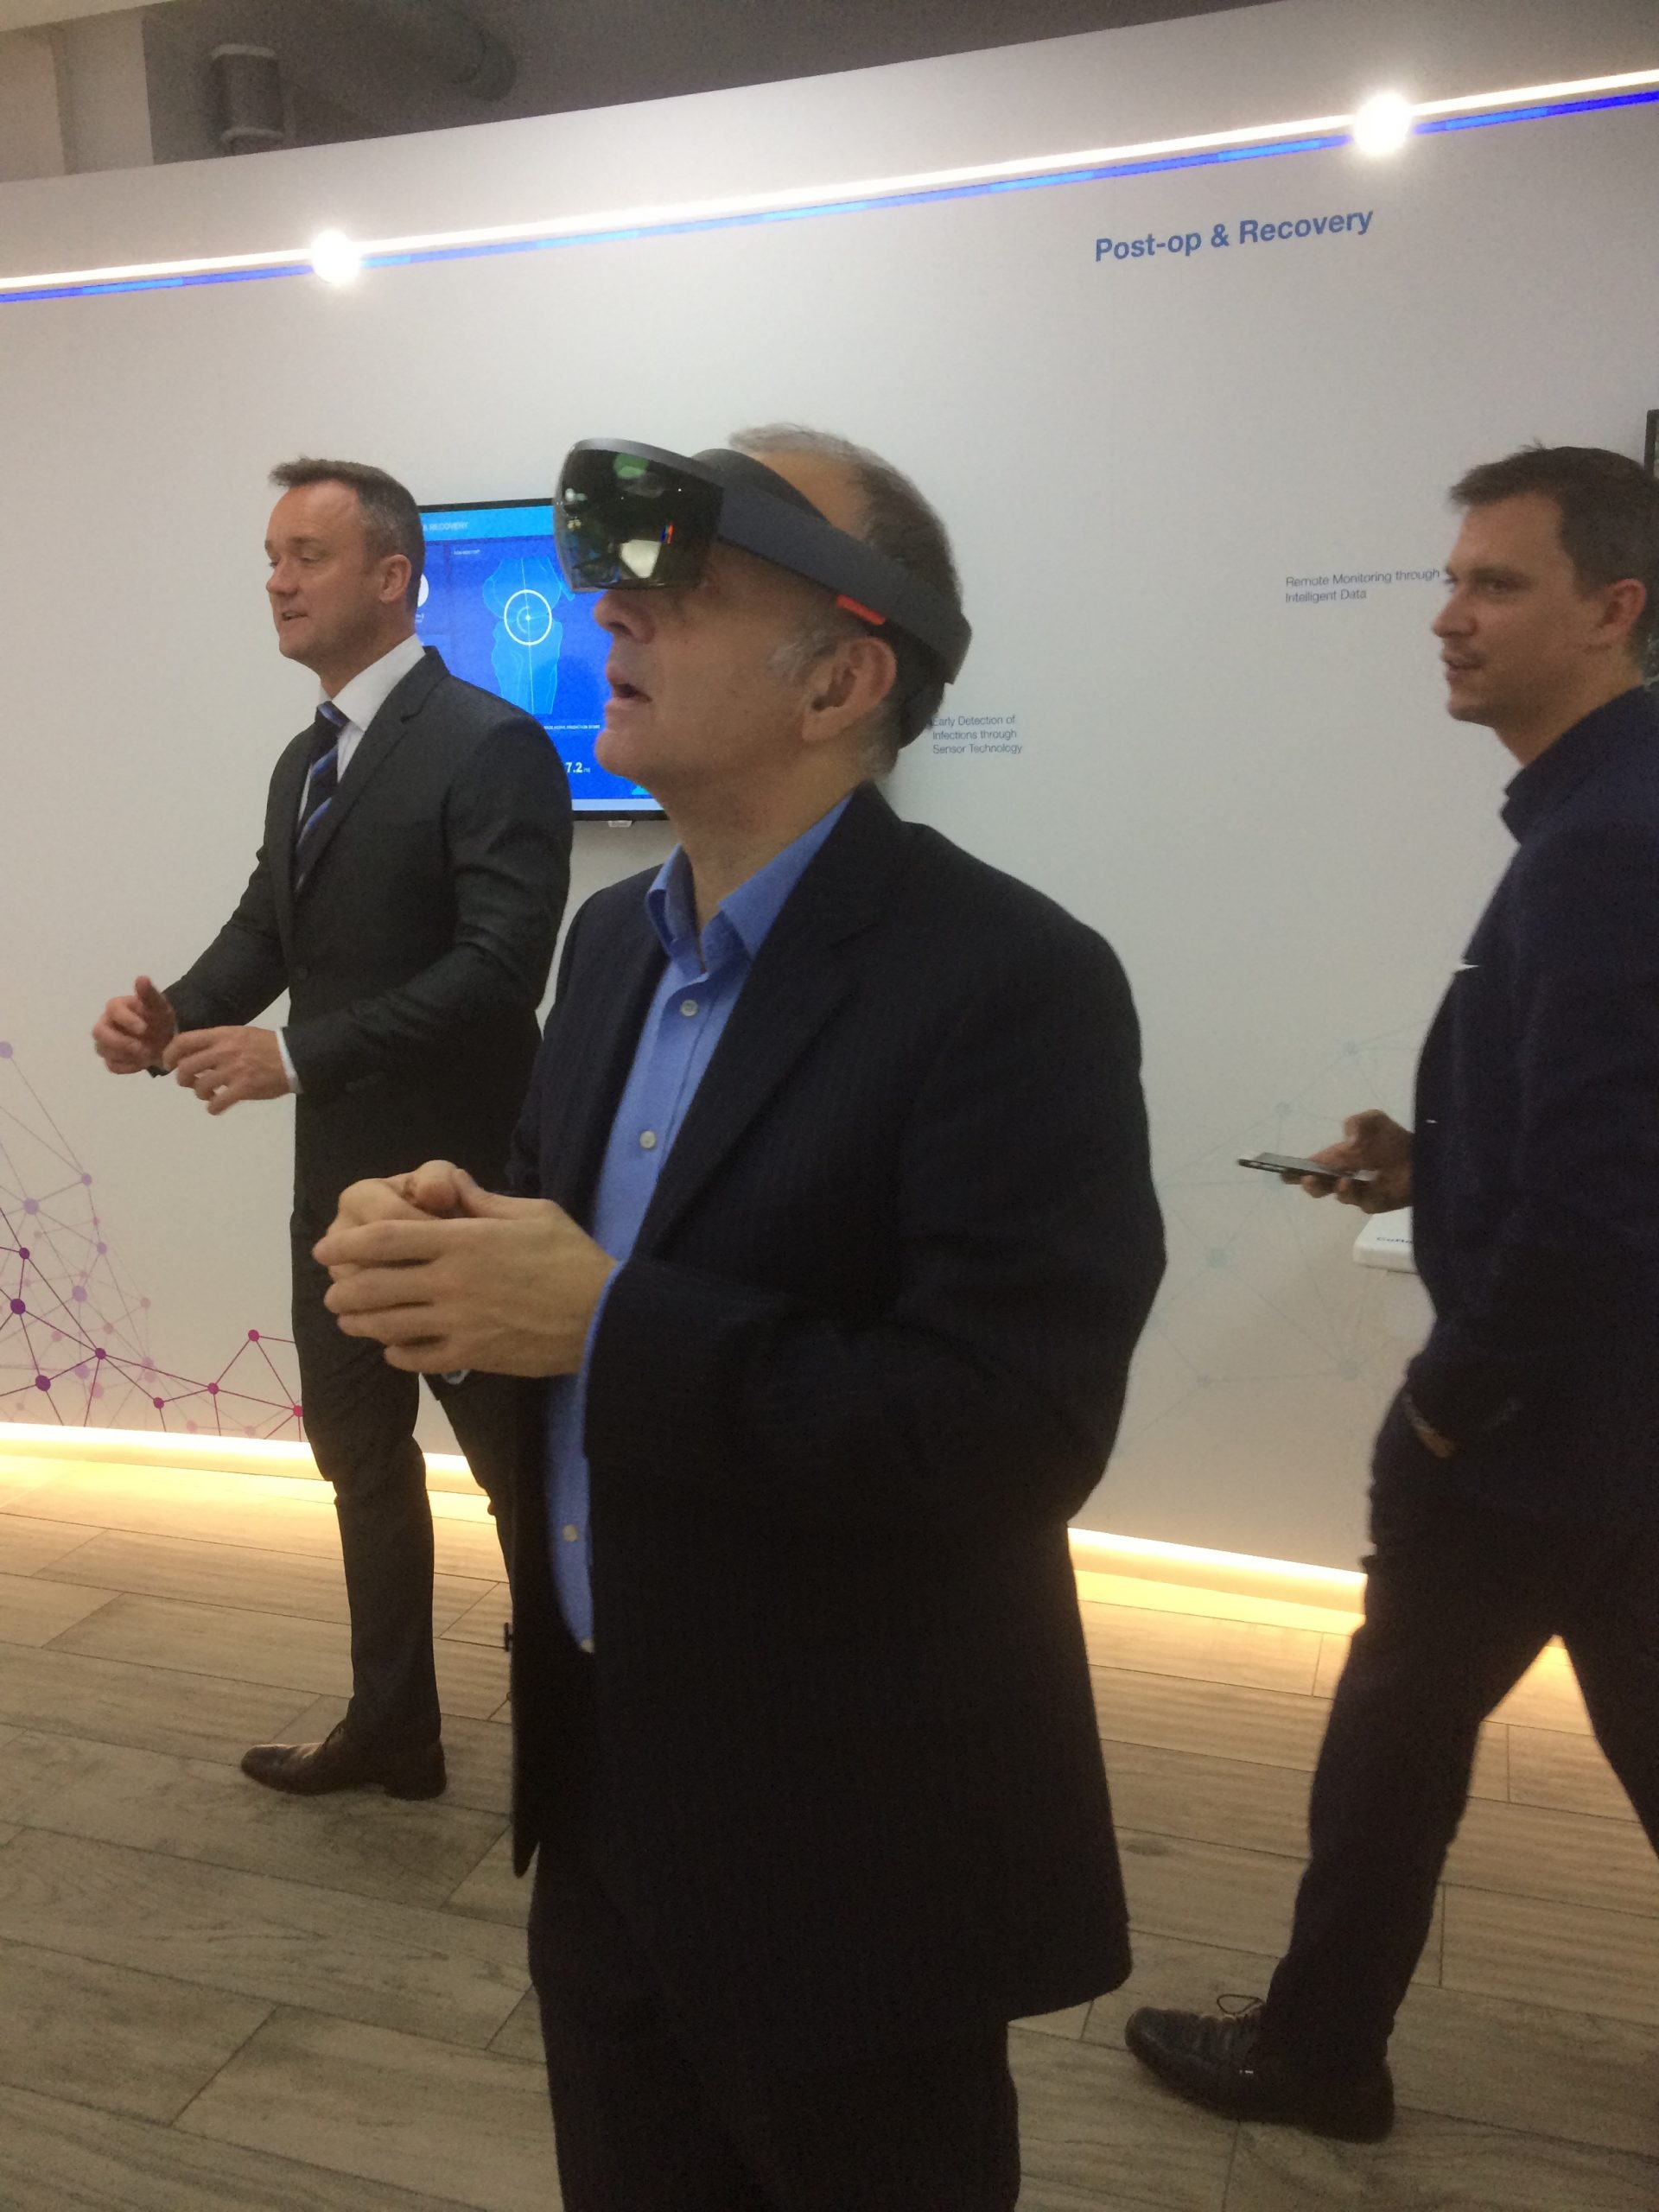 Roy Sheppard experimenting with ZimmerBiomet's augmented reality solutions